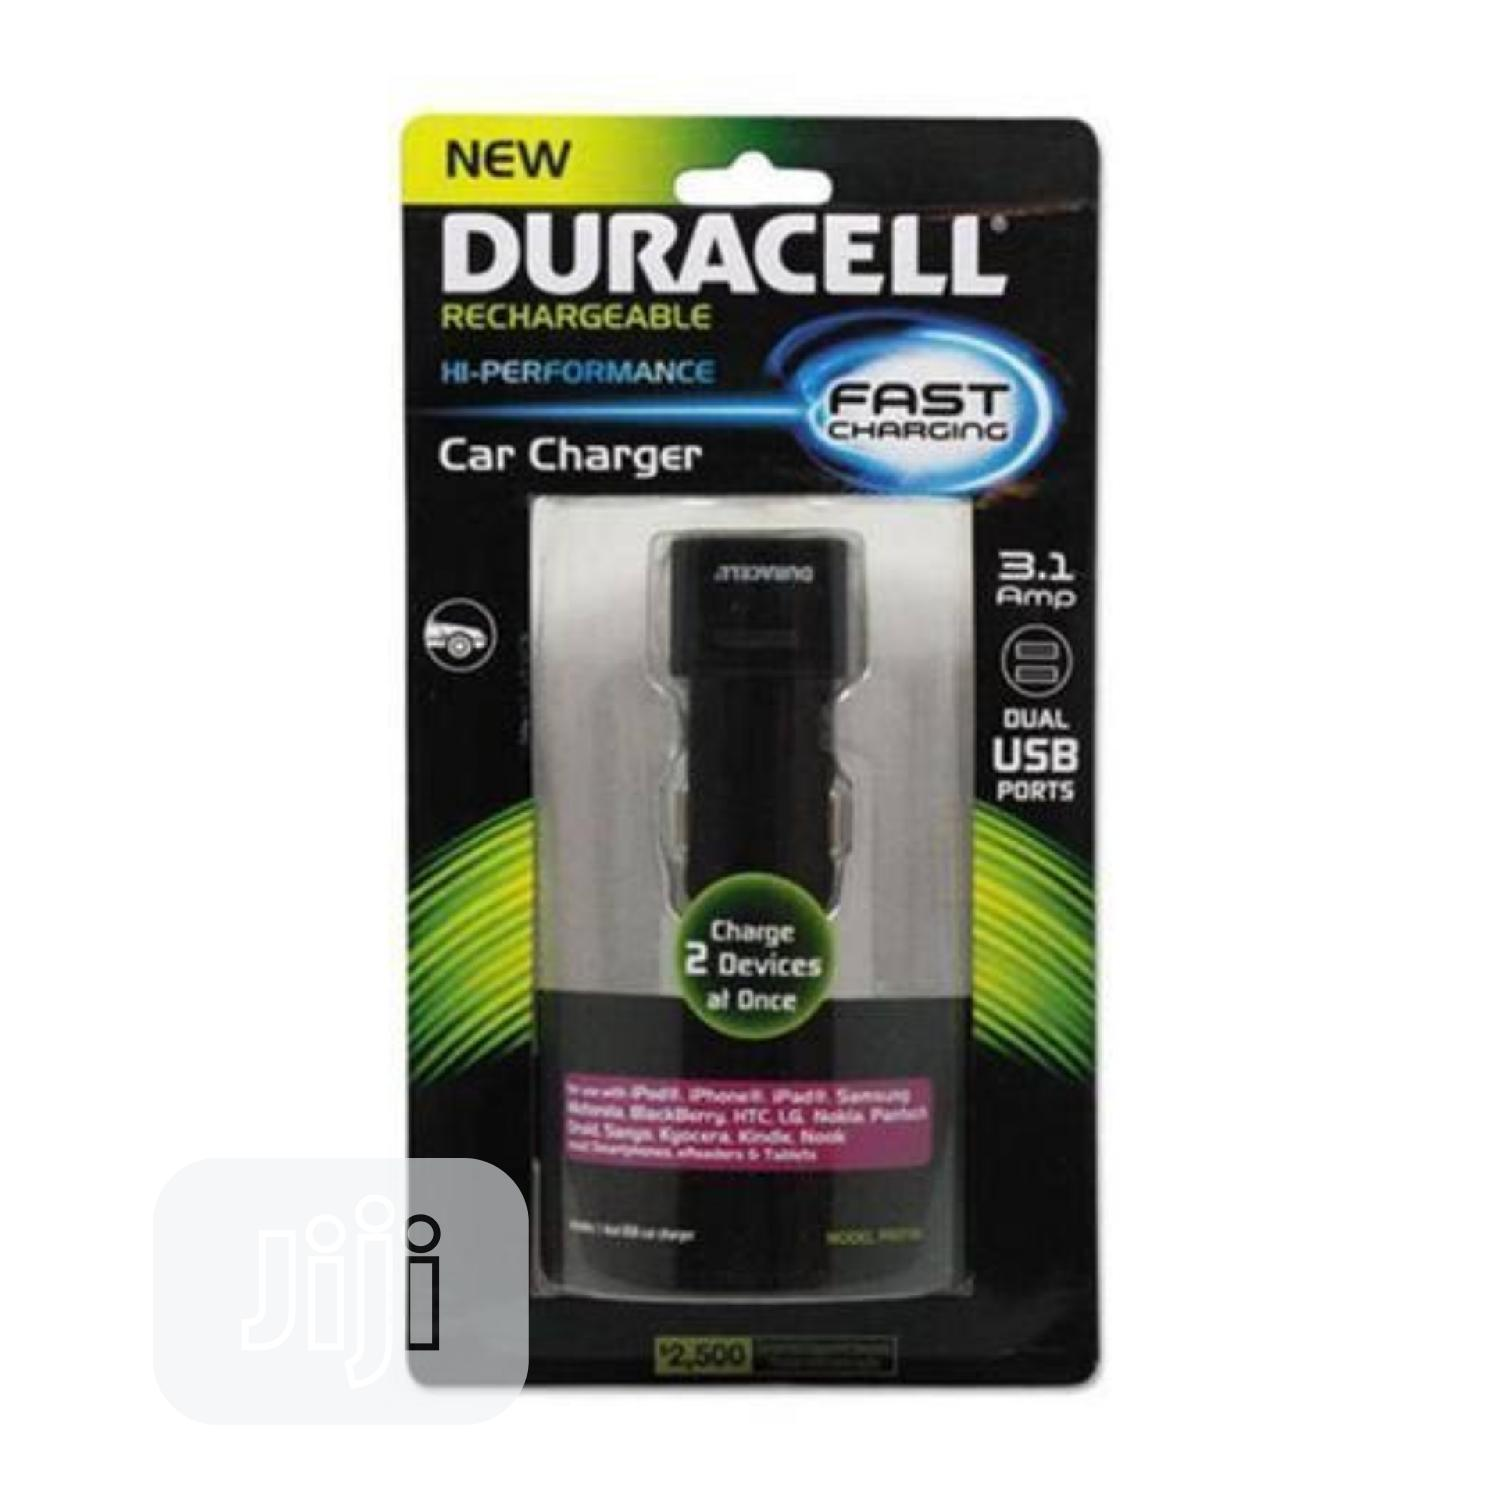 Original Duracell Fast Charging Car Charger